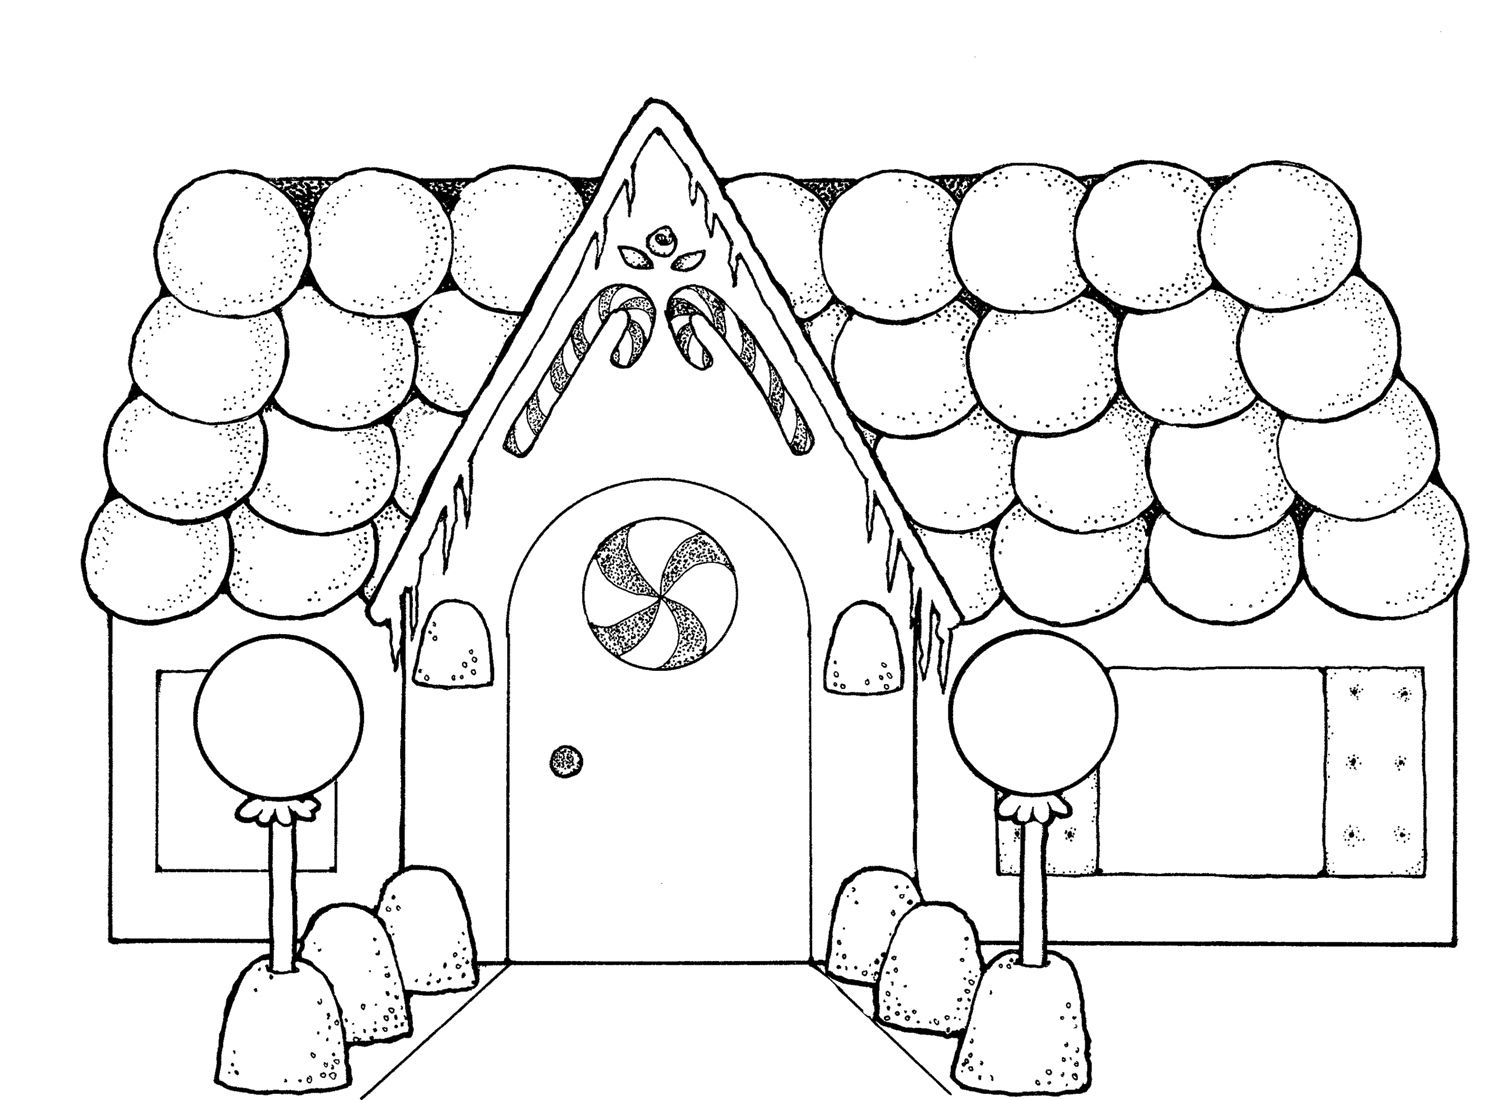 Cute Gingerbread Houses Coloring Page Sewing Pinterest